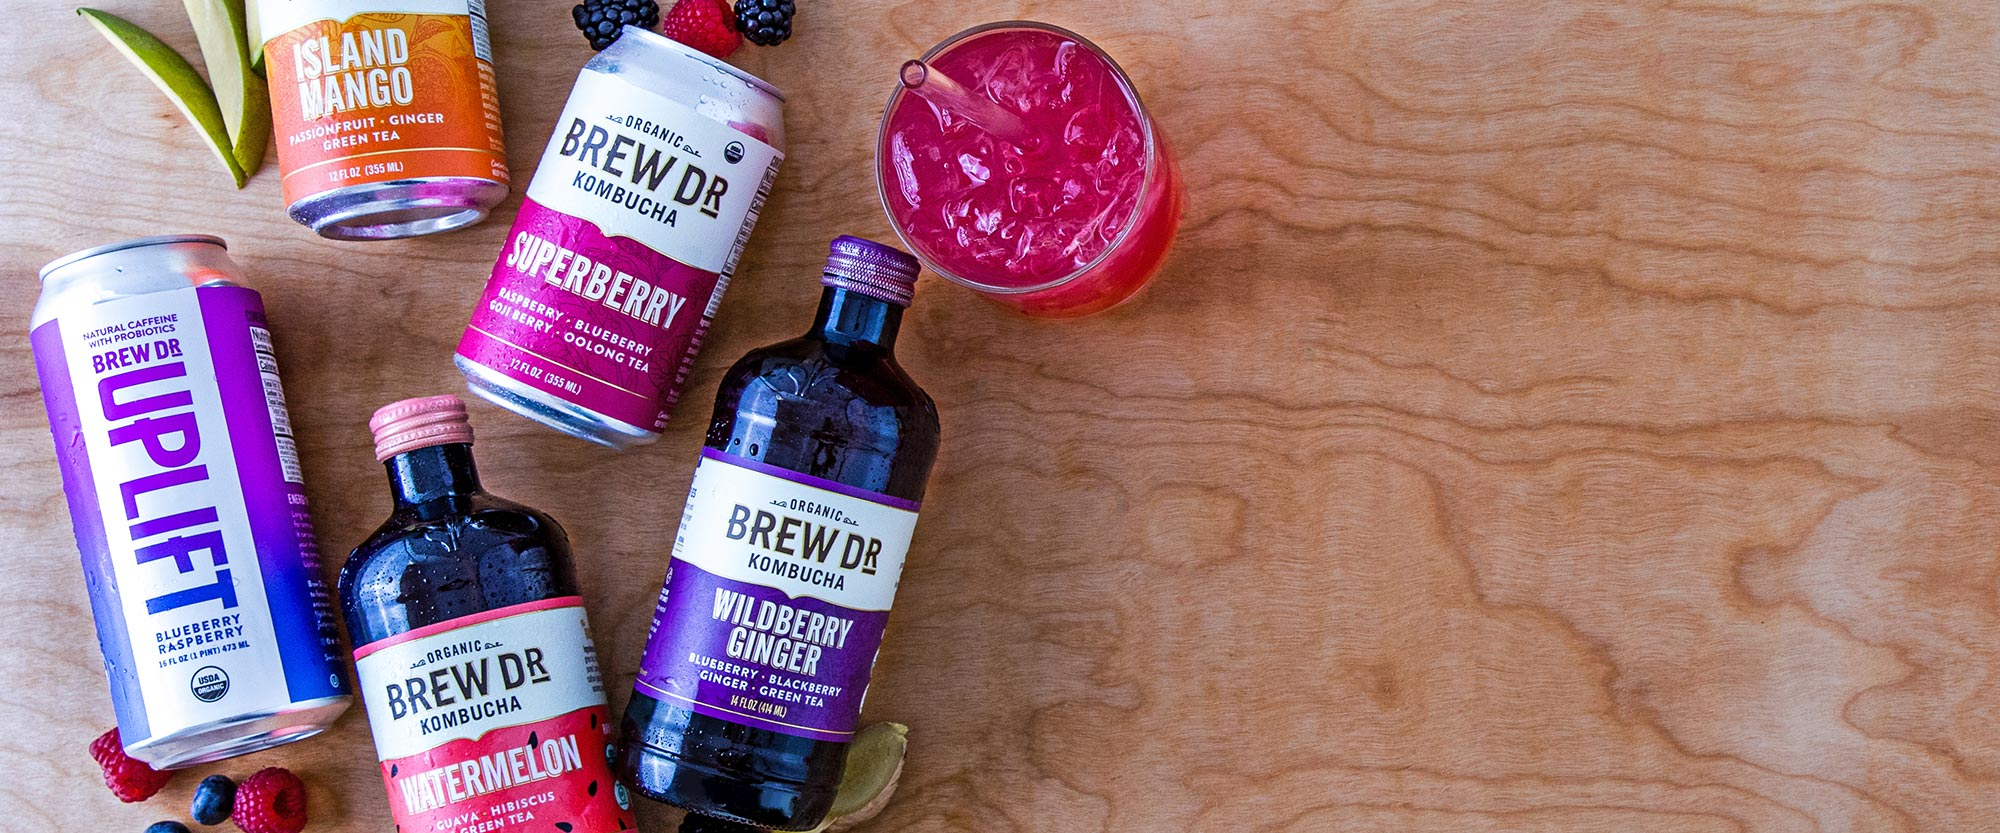 Brew Dr. Products - Brew Dr. Kombucha and Uplift cans and bottles